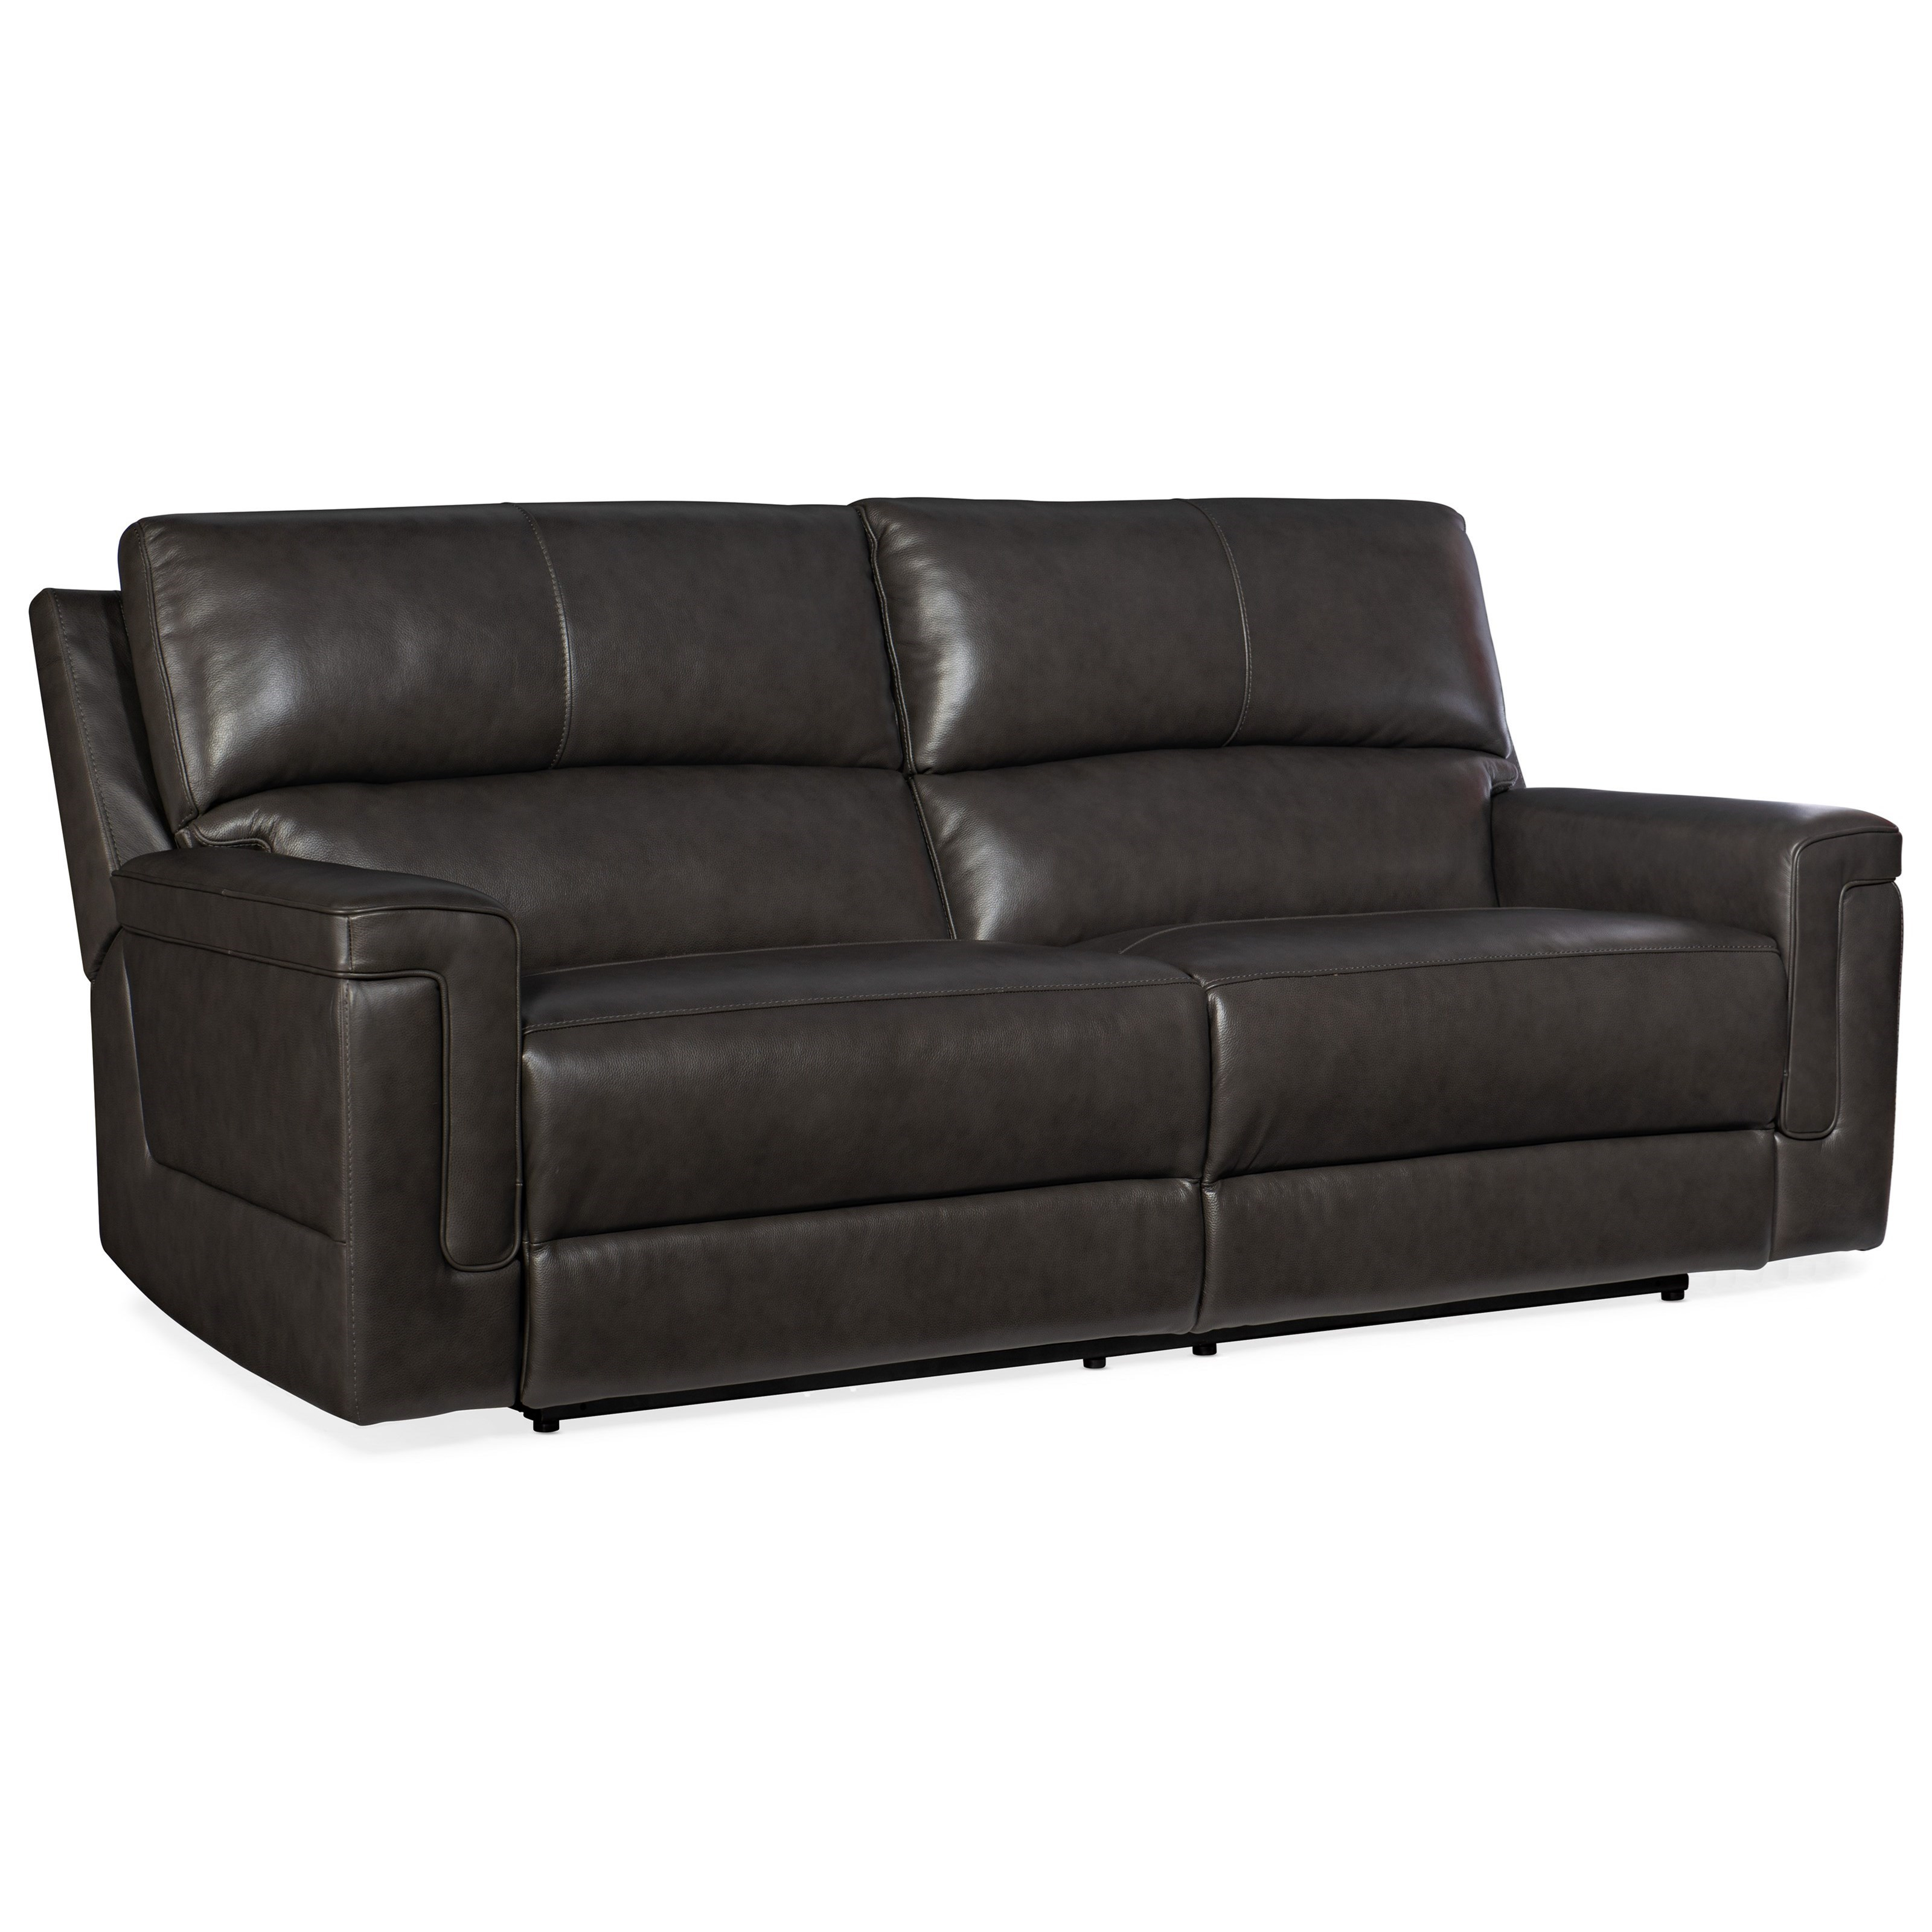 Gable Power Reclining Leather Sofa by Hooker Furniture at Baer's Furniture